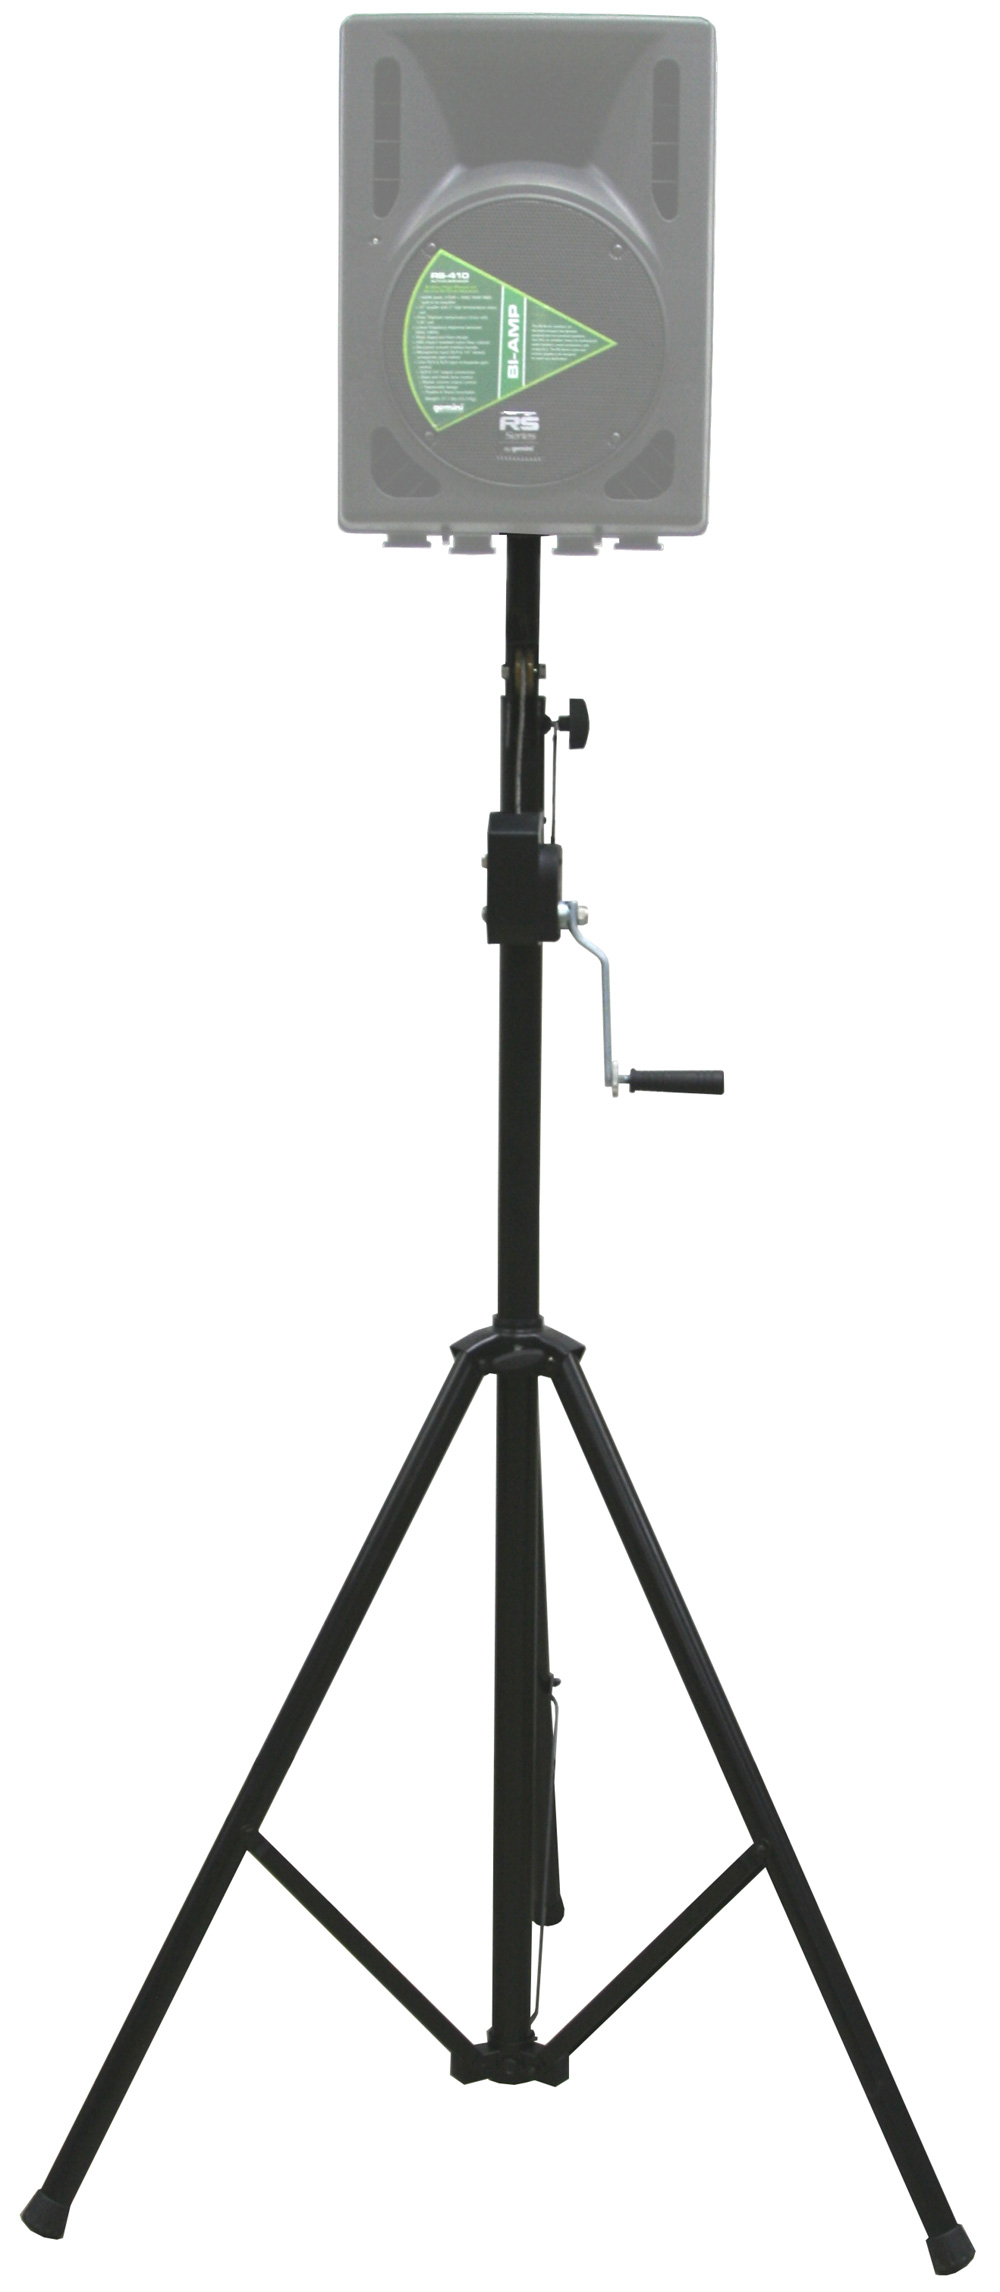 DJ Pro Audio PA Speaker or Lighting Adjustable 10 Foot Max Height Crank Tripod Stand